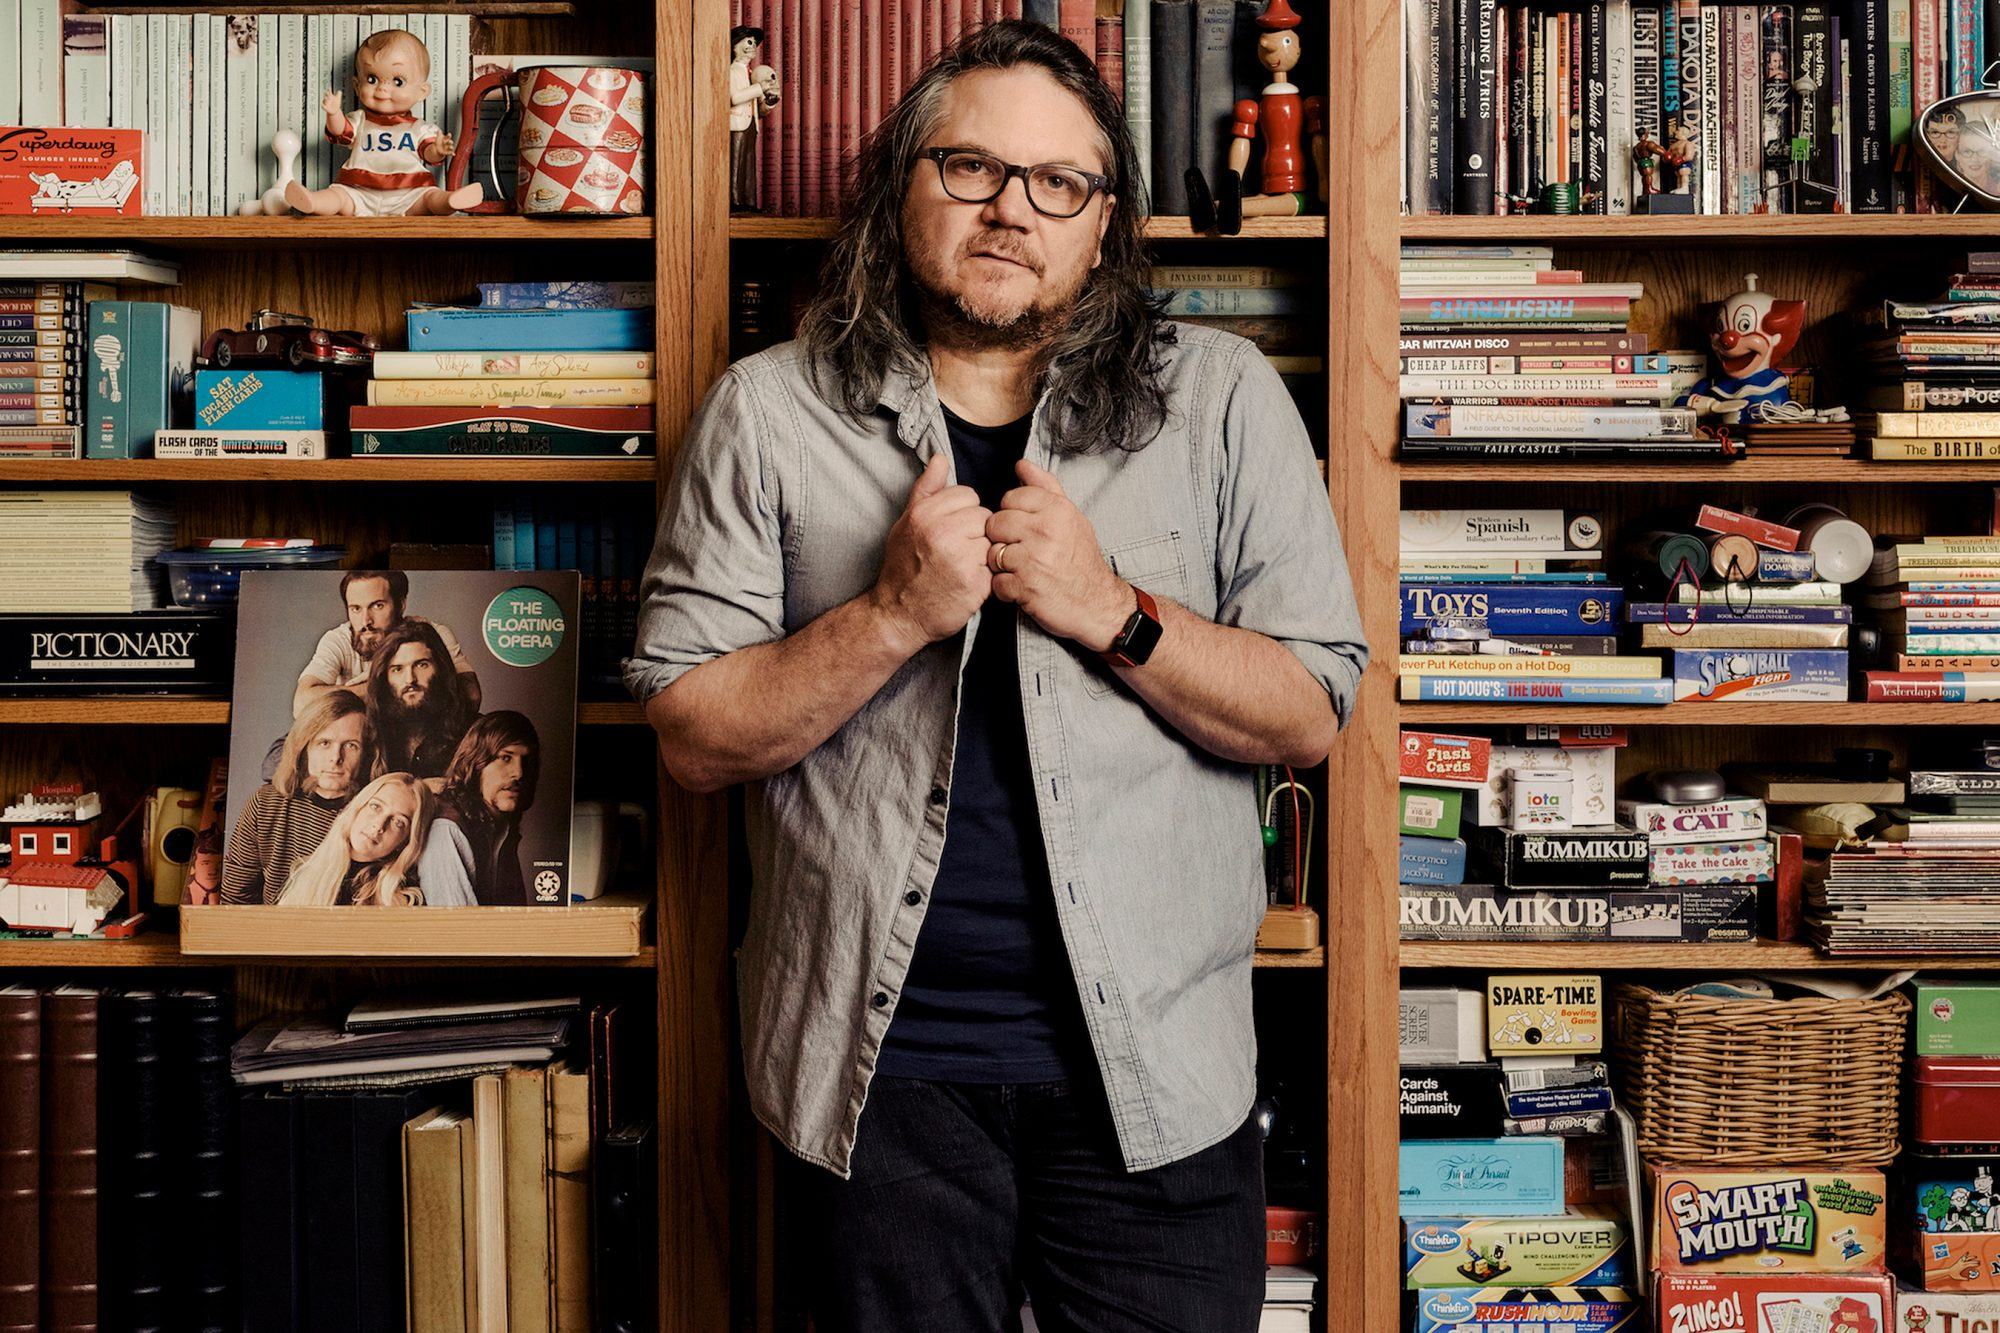 Jeff Tweedyhttp://pitchperfectpr.com/jeff-tweedy/Credit: Whitten Sabbatini